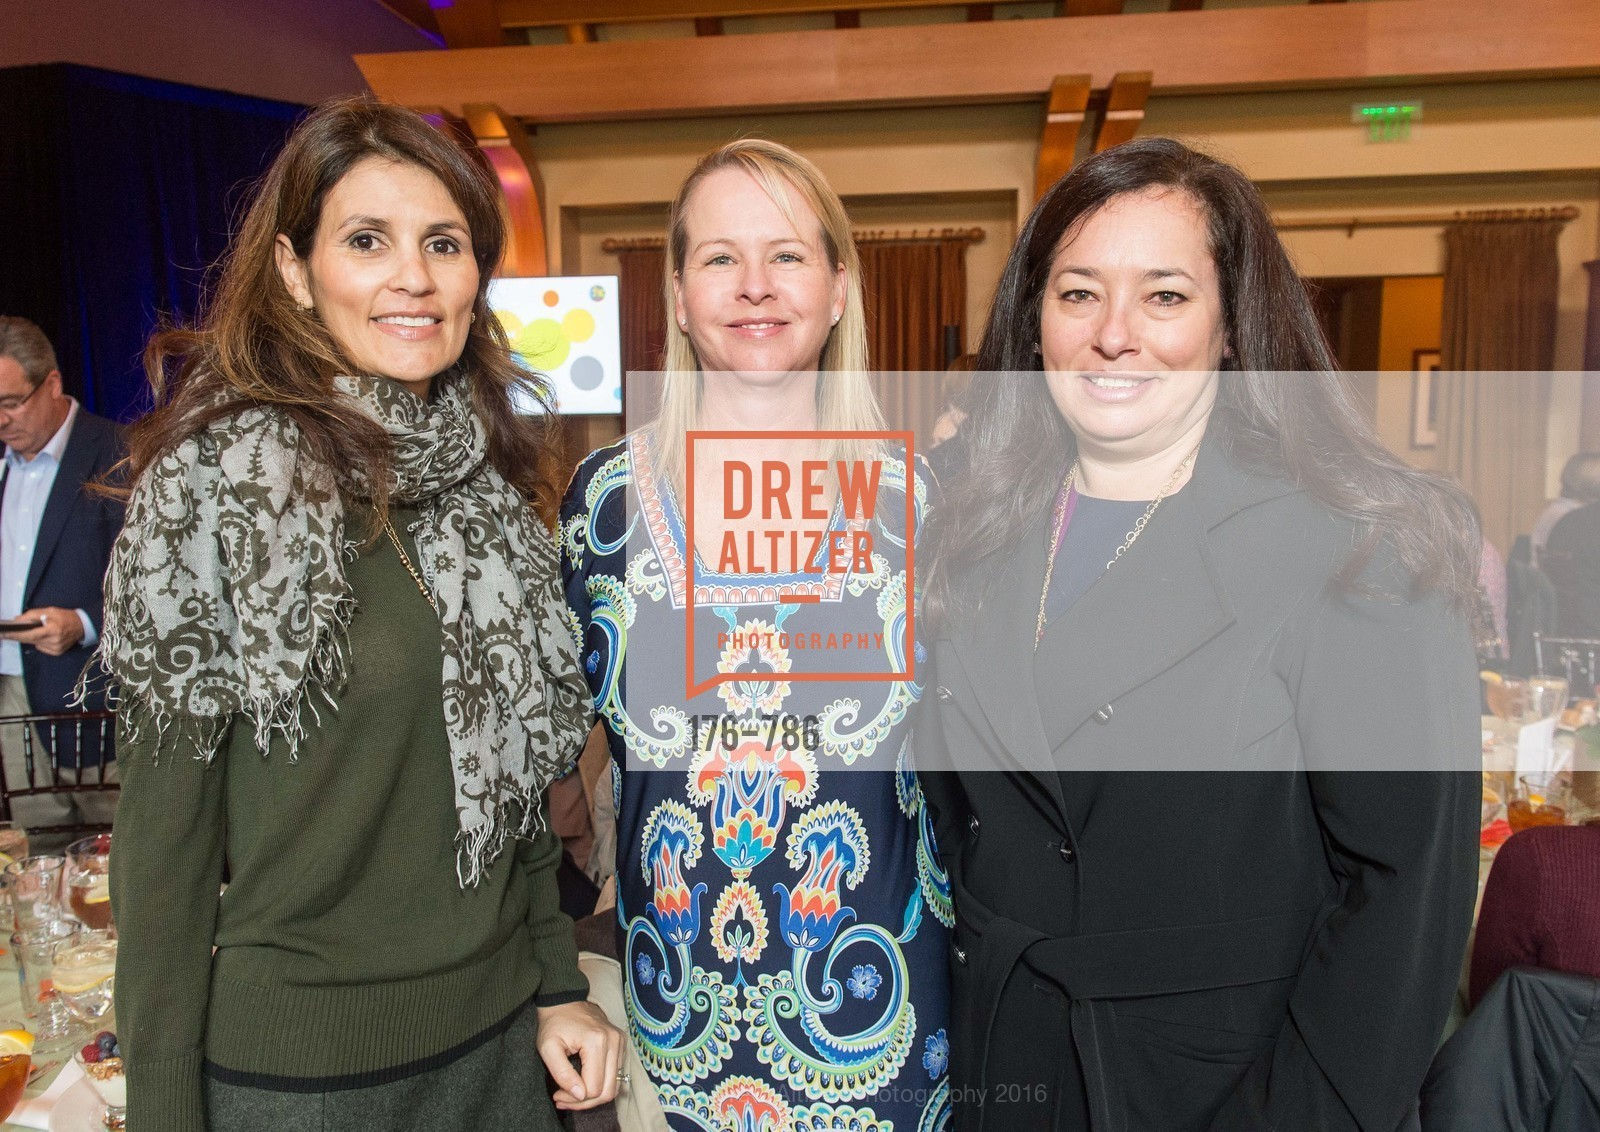 Chris Schumacher, Nicki Stephenson, Lynn Cullen, The Children's Health Council Breakfast, Sharon Height Golf and Country Club. 900 Sand Hill Rd, February 2nd, 2016,Drew Altizer, Drew Altizer Photography, full-service agency, private events, San Francisco photographer, photographer california